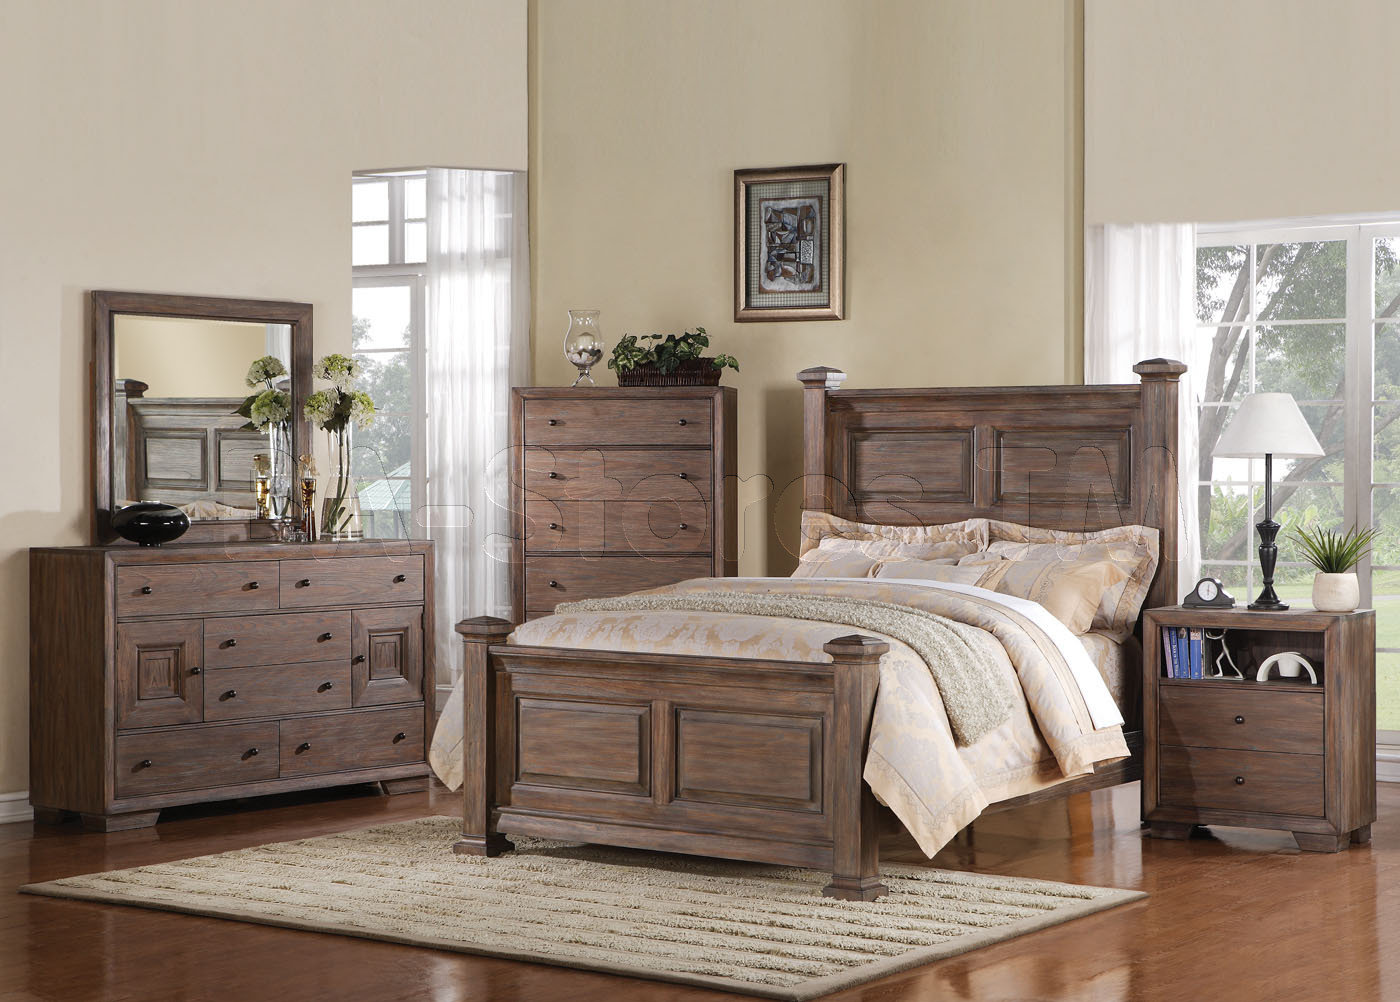 bedroom furniture white distressed photo - 3